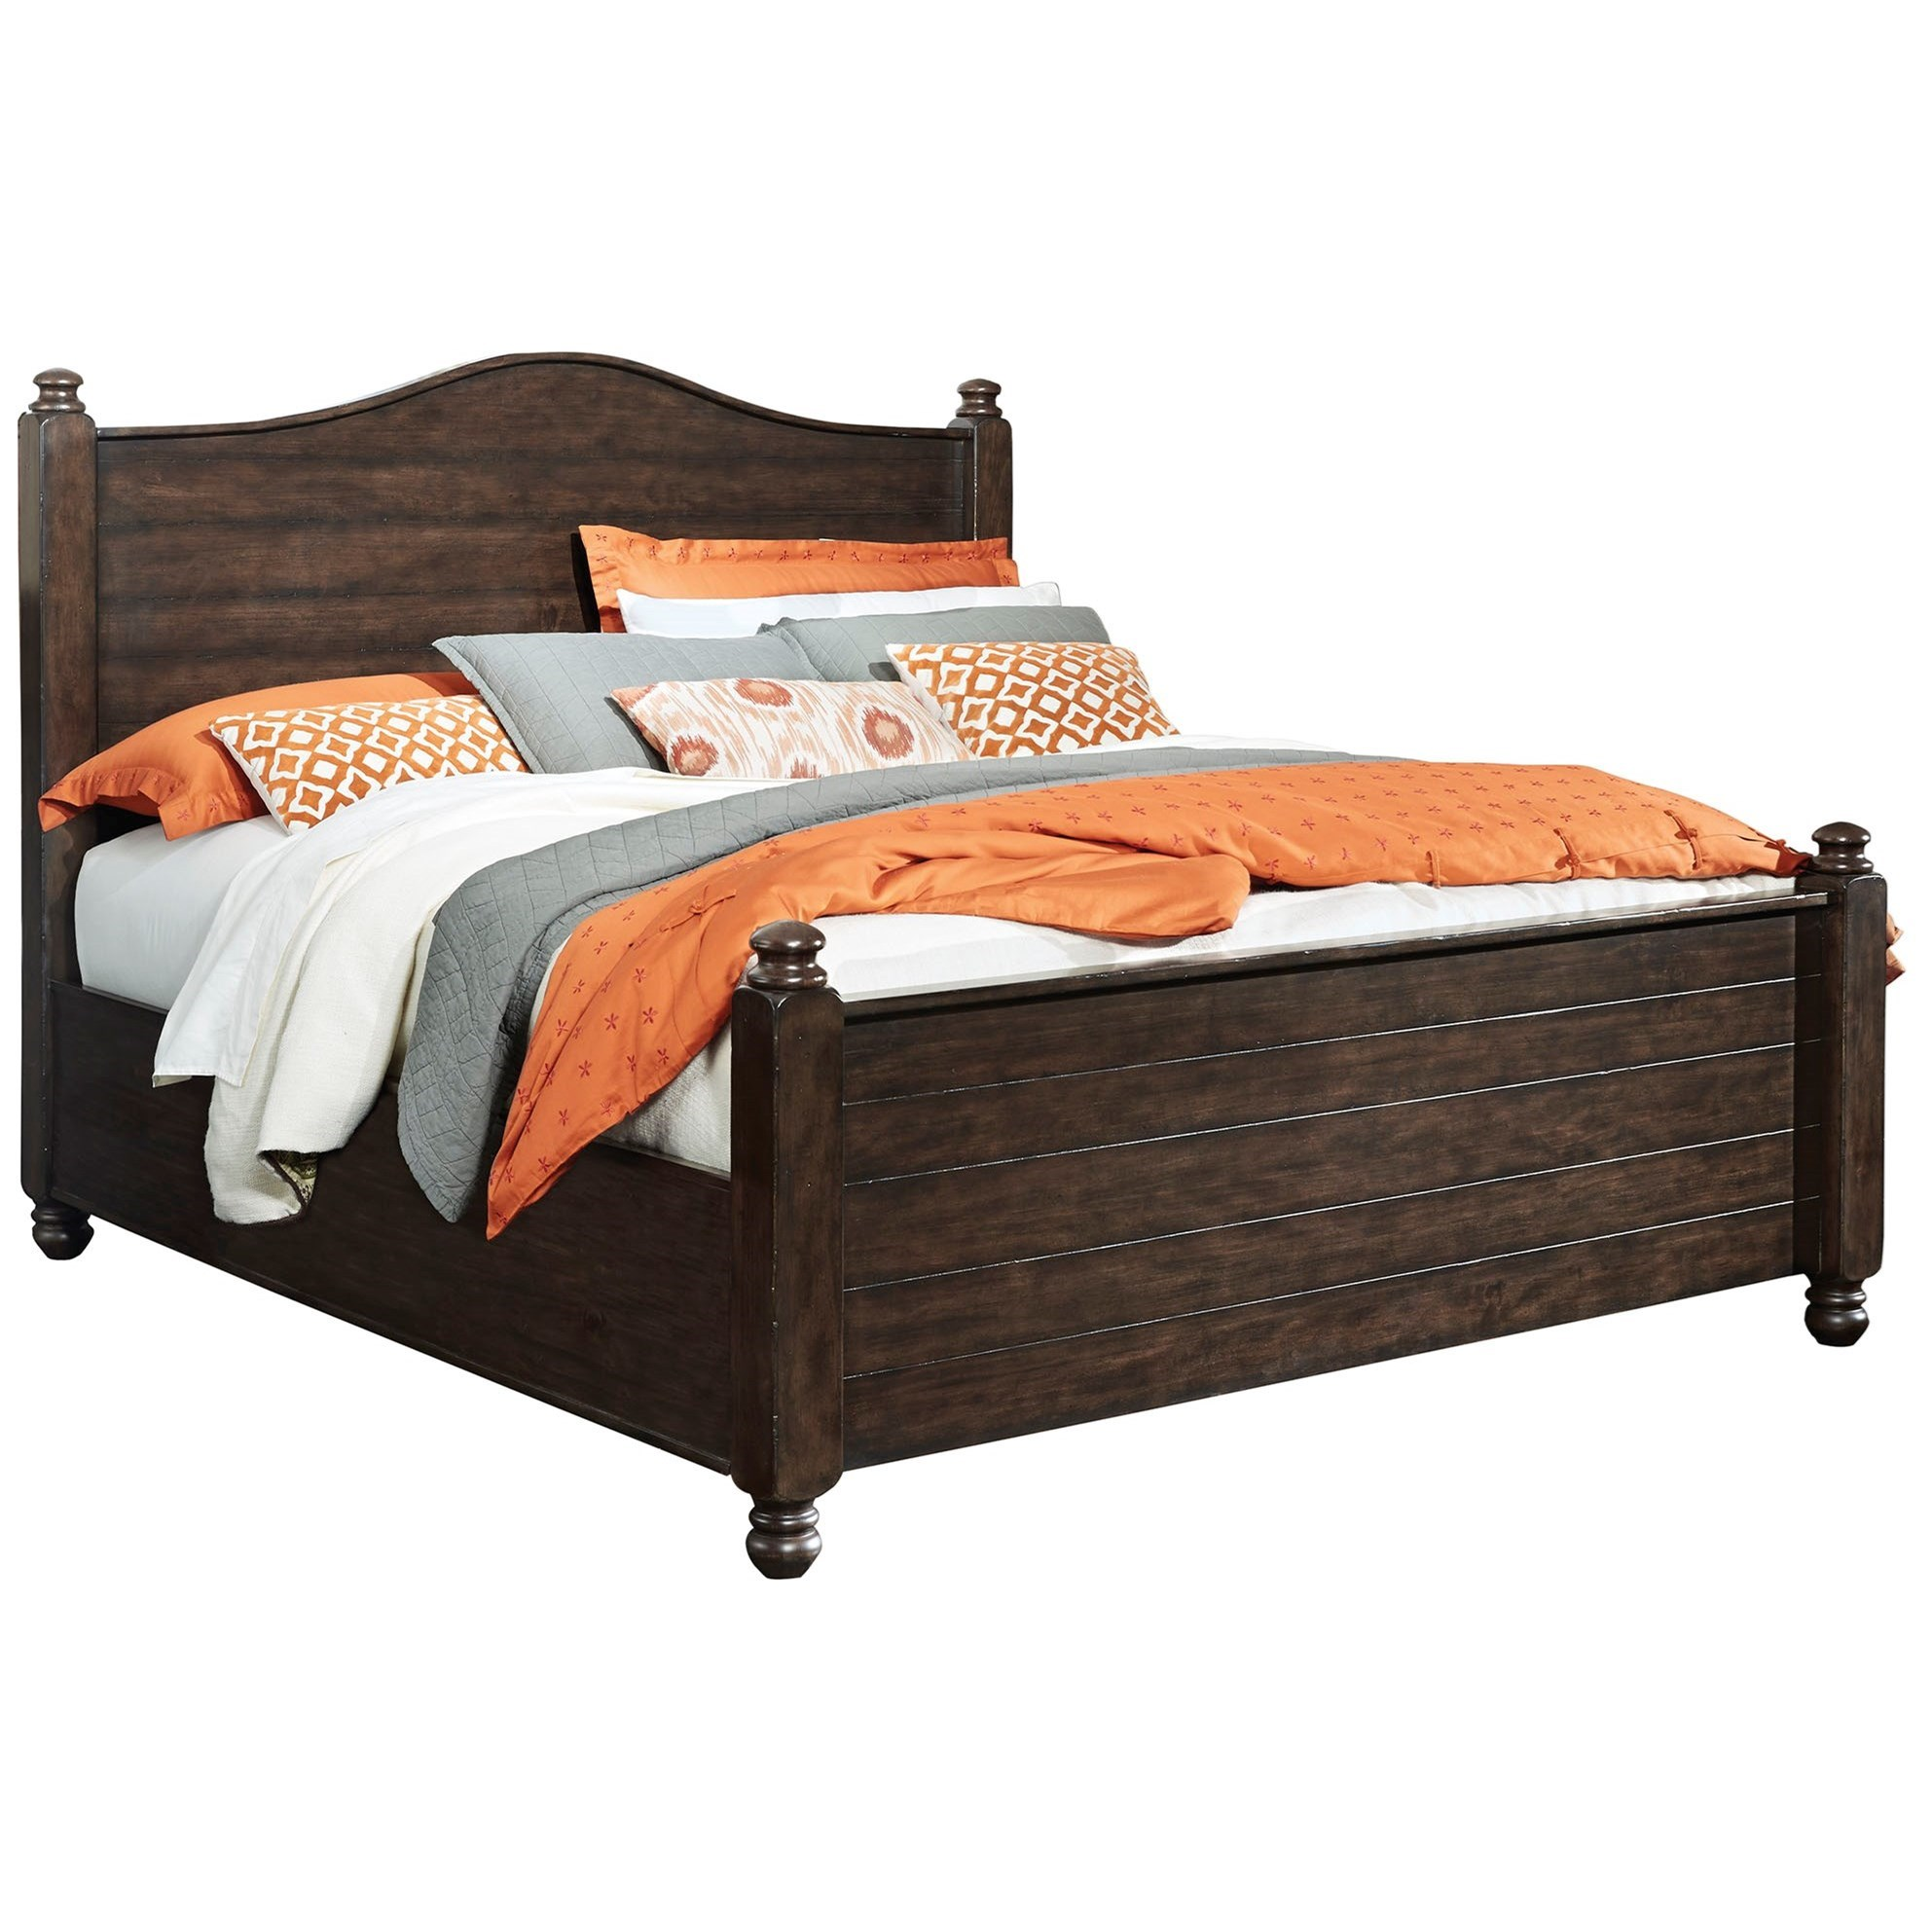 Traditional King Poster Bed With Arched Headboard And Plank Detail